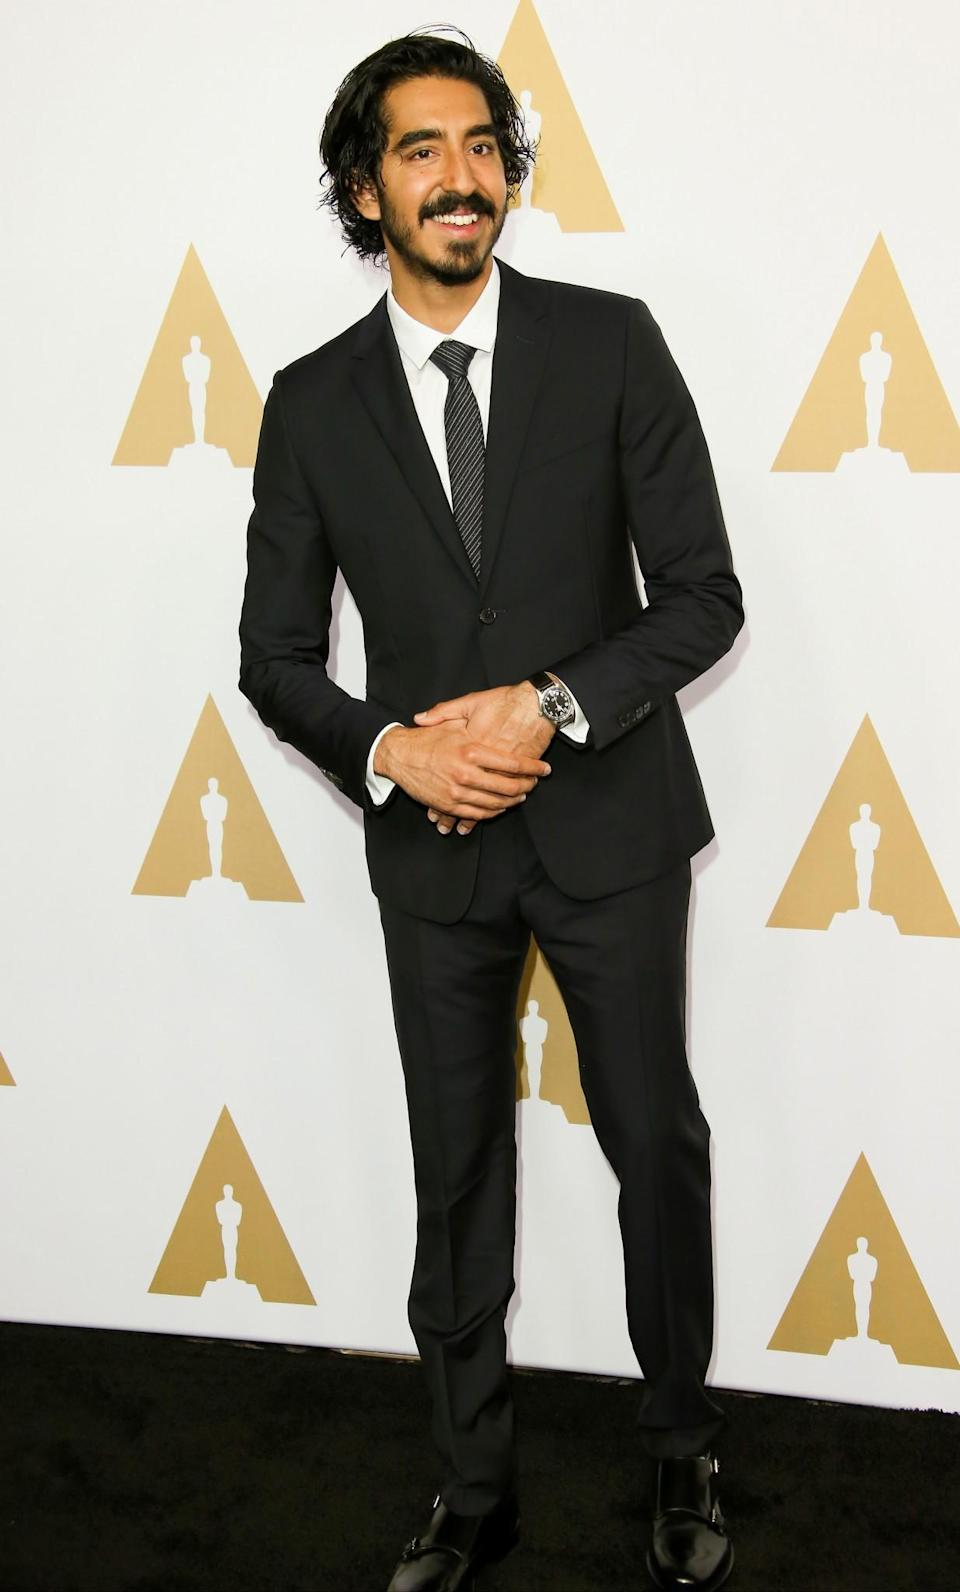 <p>'Lion' actor Dev Patel also suited up and showed off his ever growing facial hair. [Photo: Getty] </p>